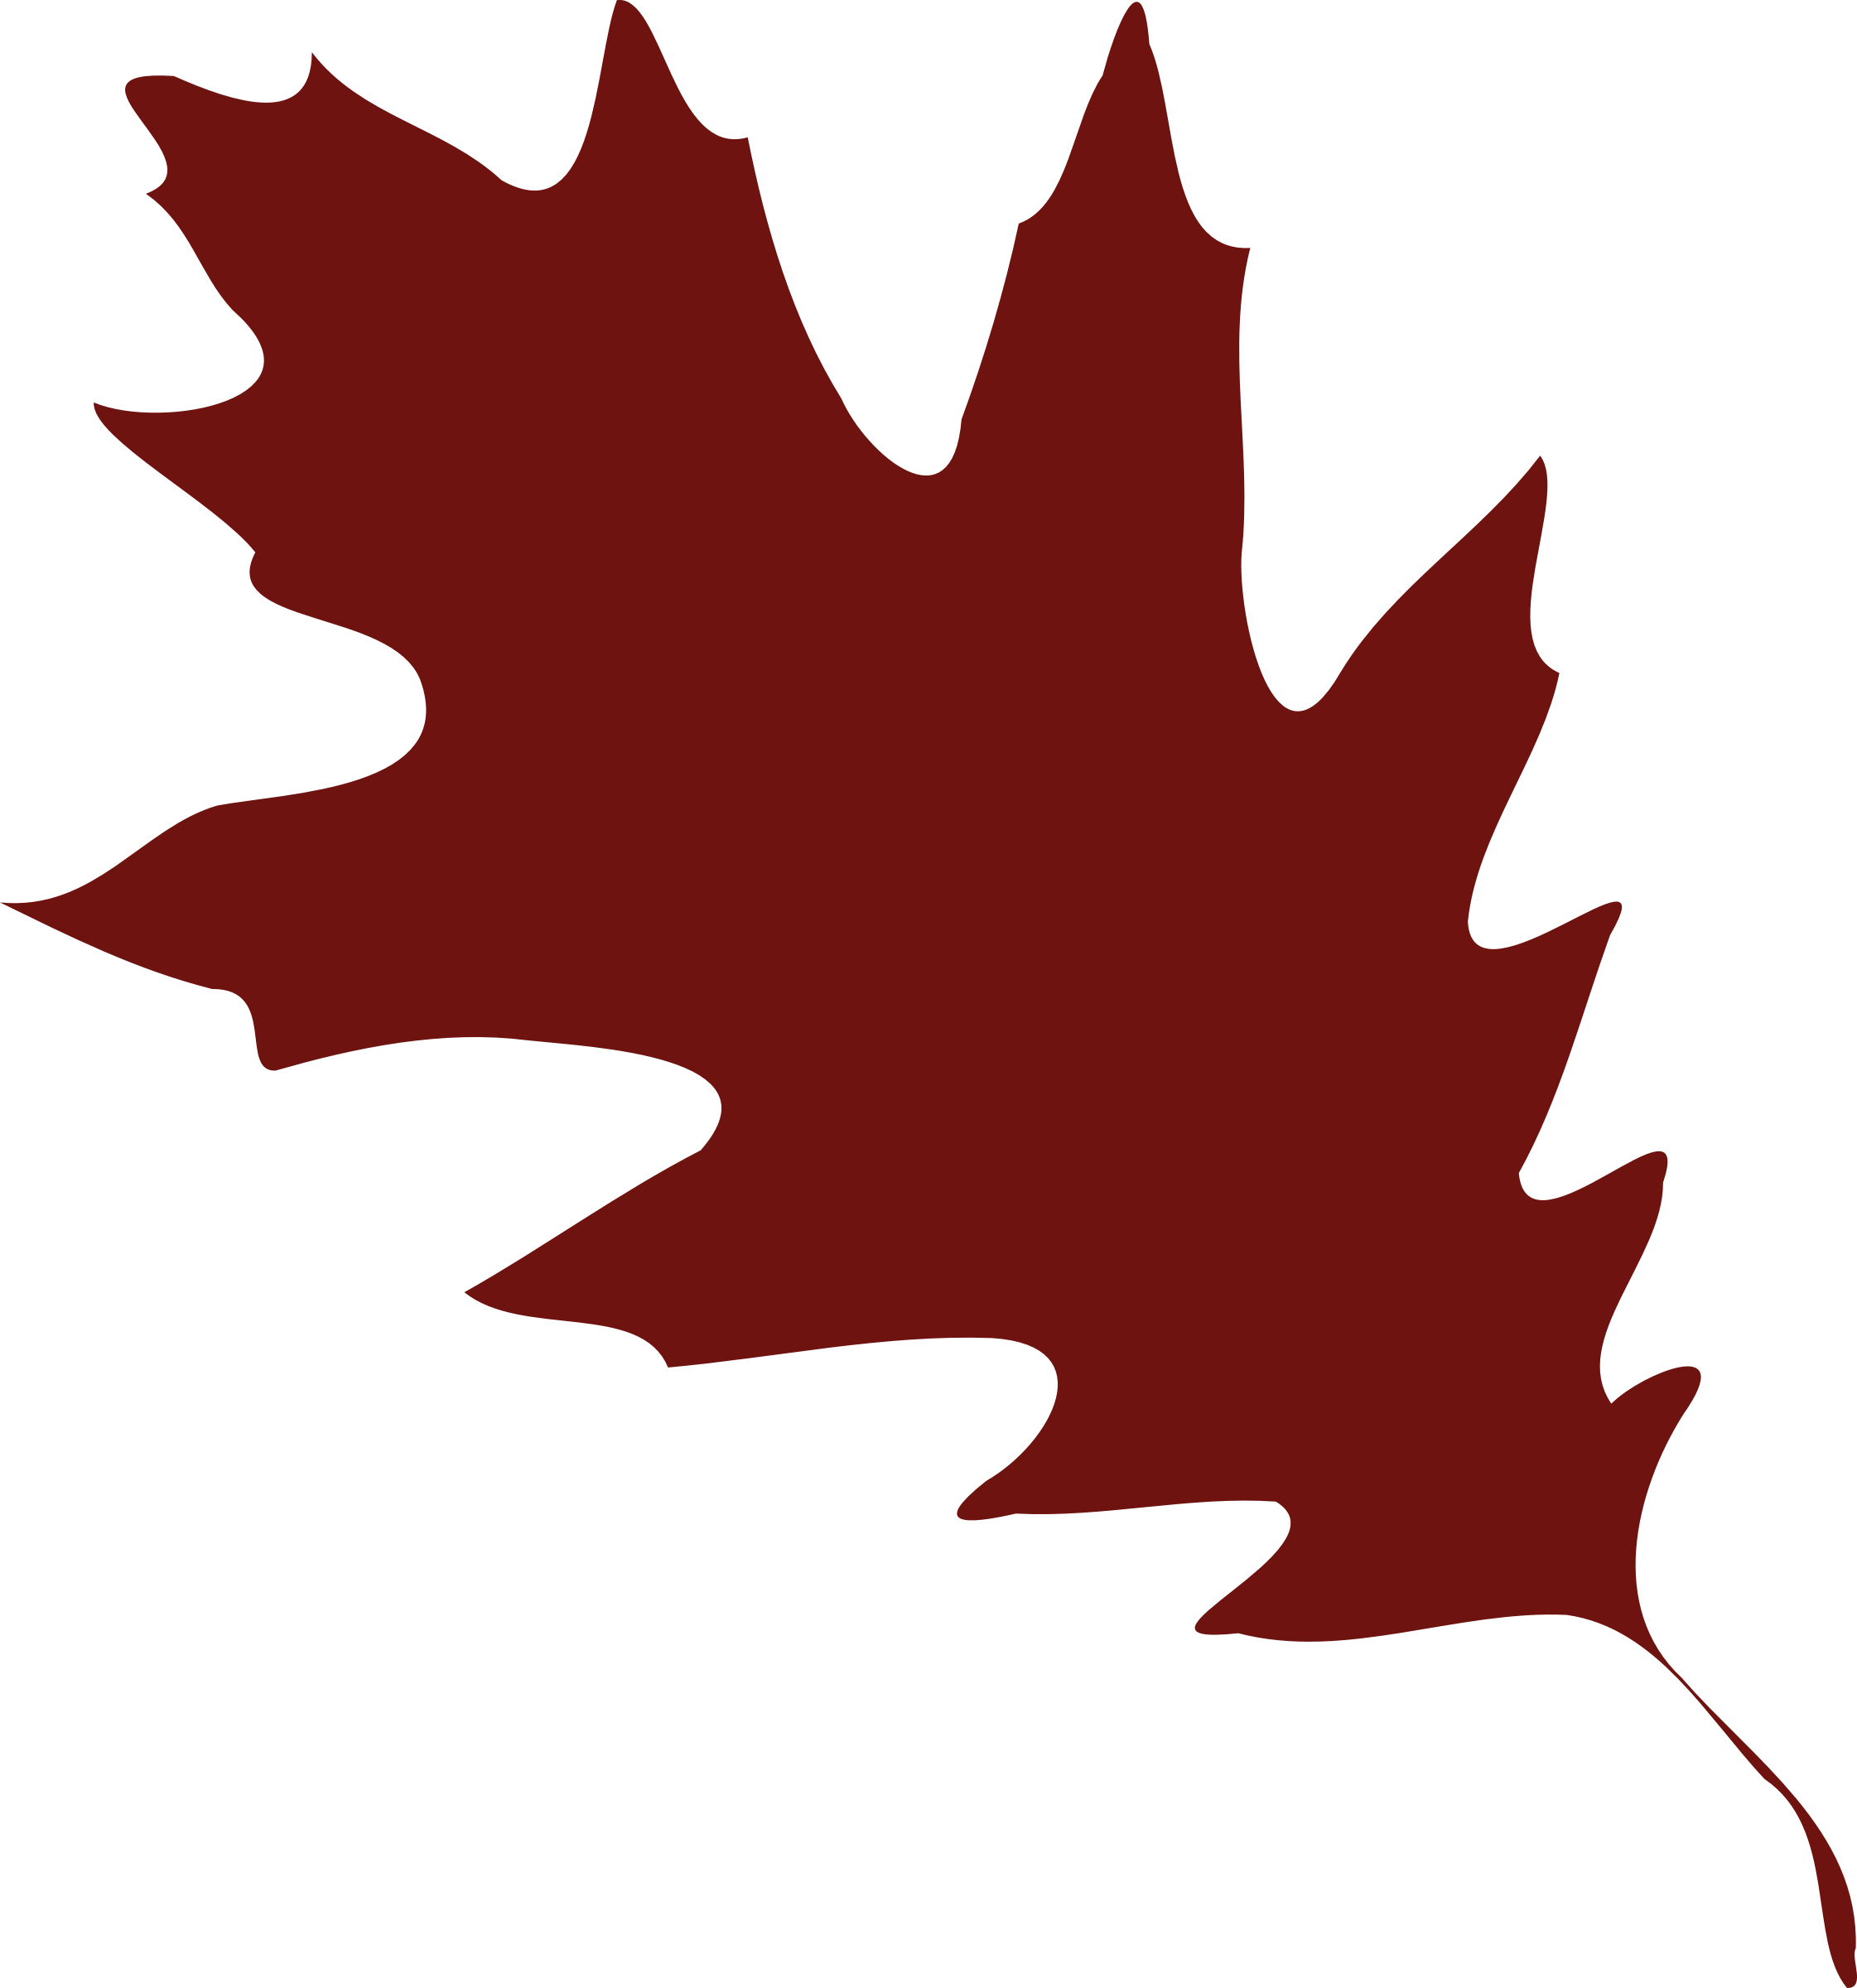 Leaf 08 Leaf Silhouette Fall Leaves Drawing Silhouette Vector